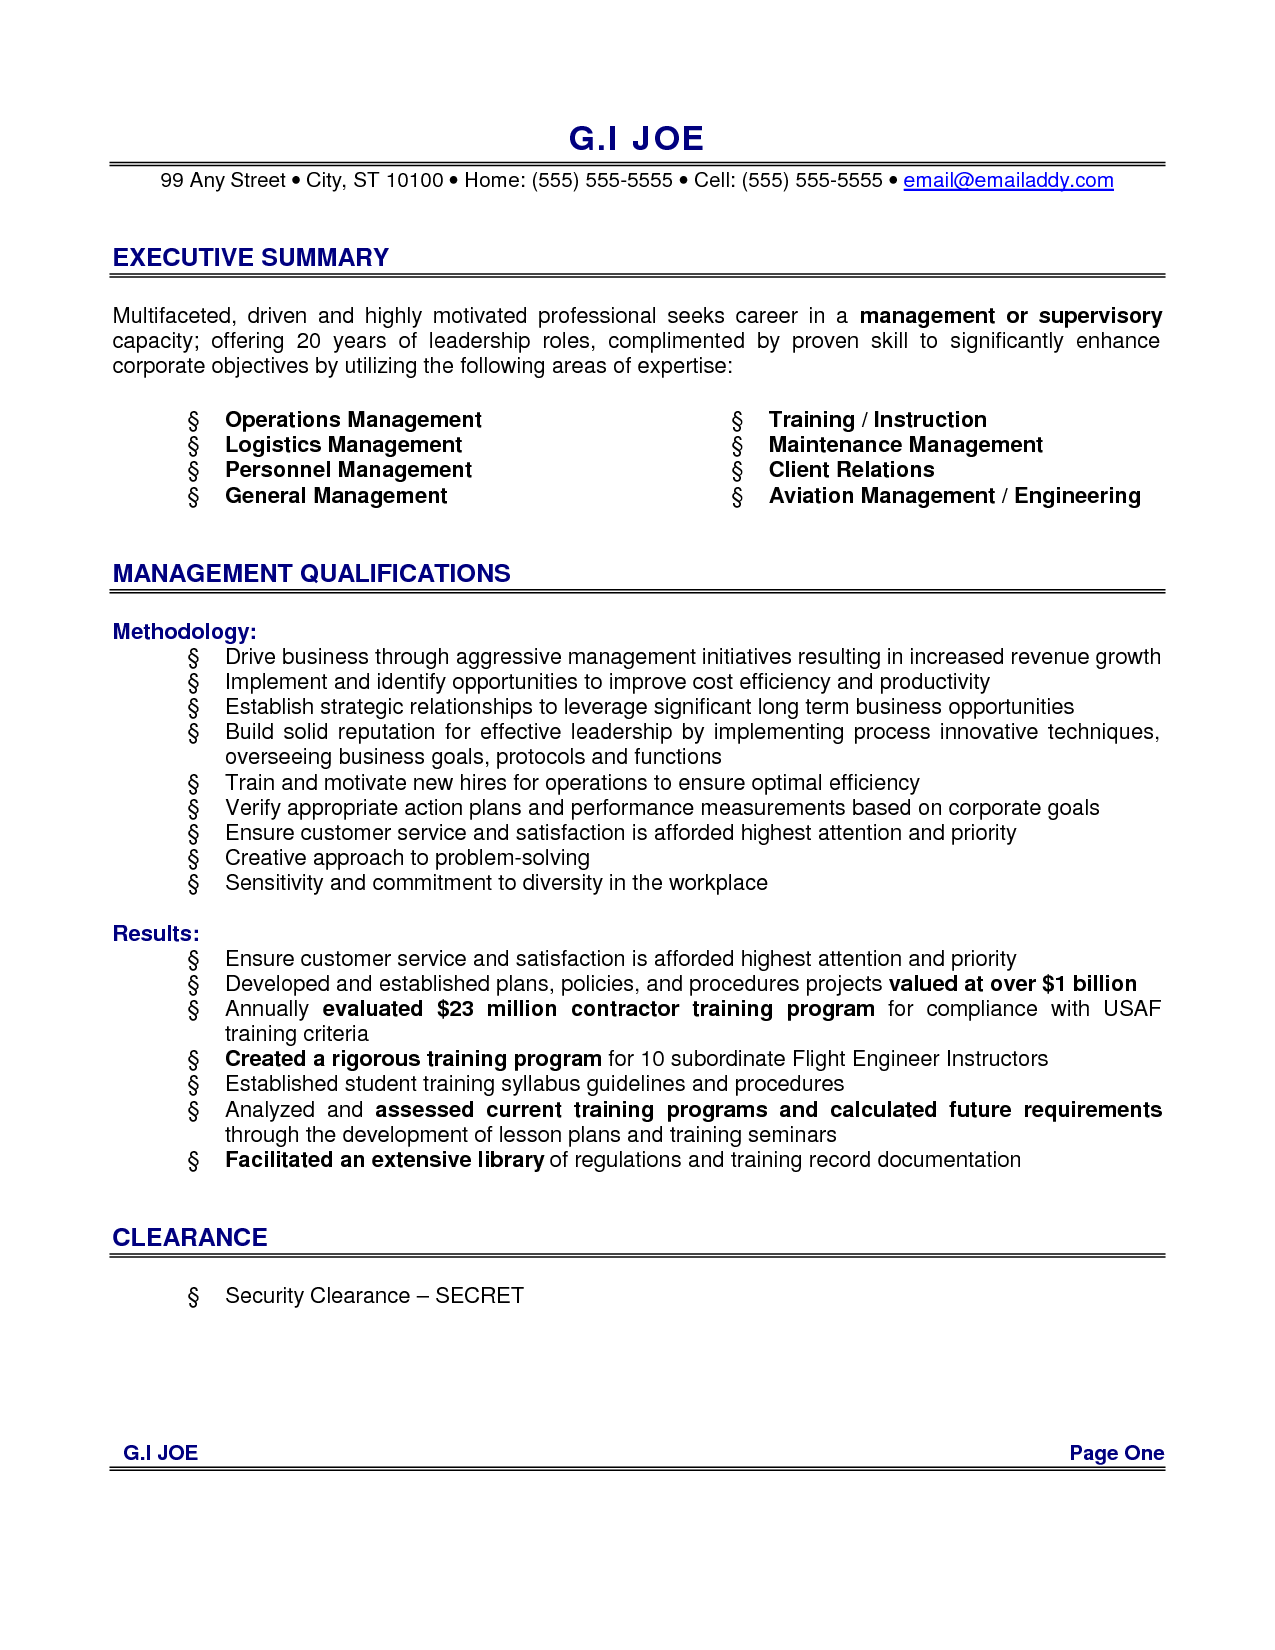 Resume Examples For Executive Summary With Management Qualifications Example As Writing Guidelines Following The Best In